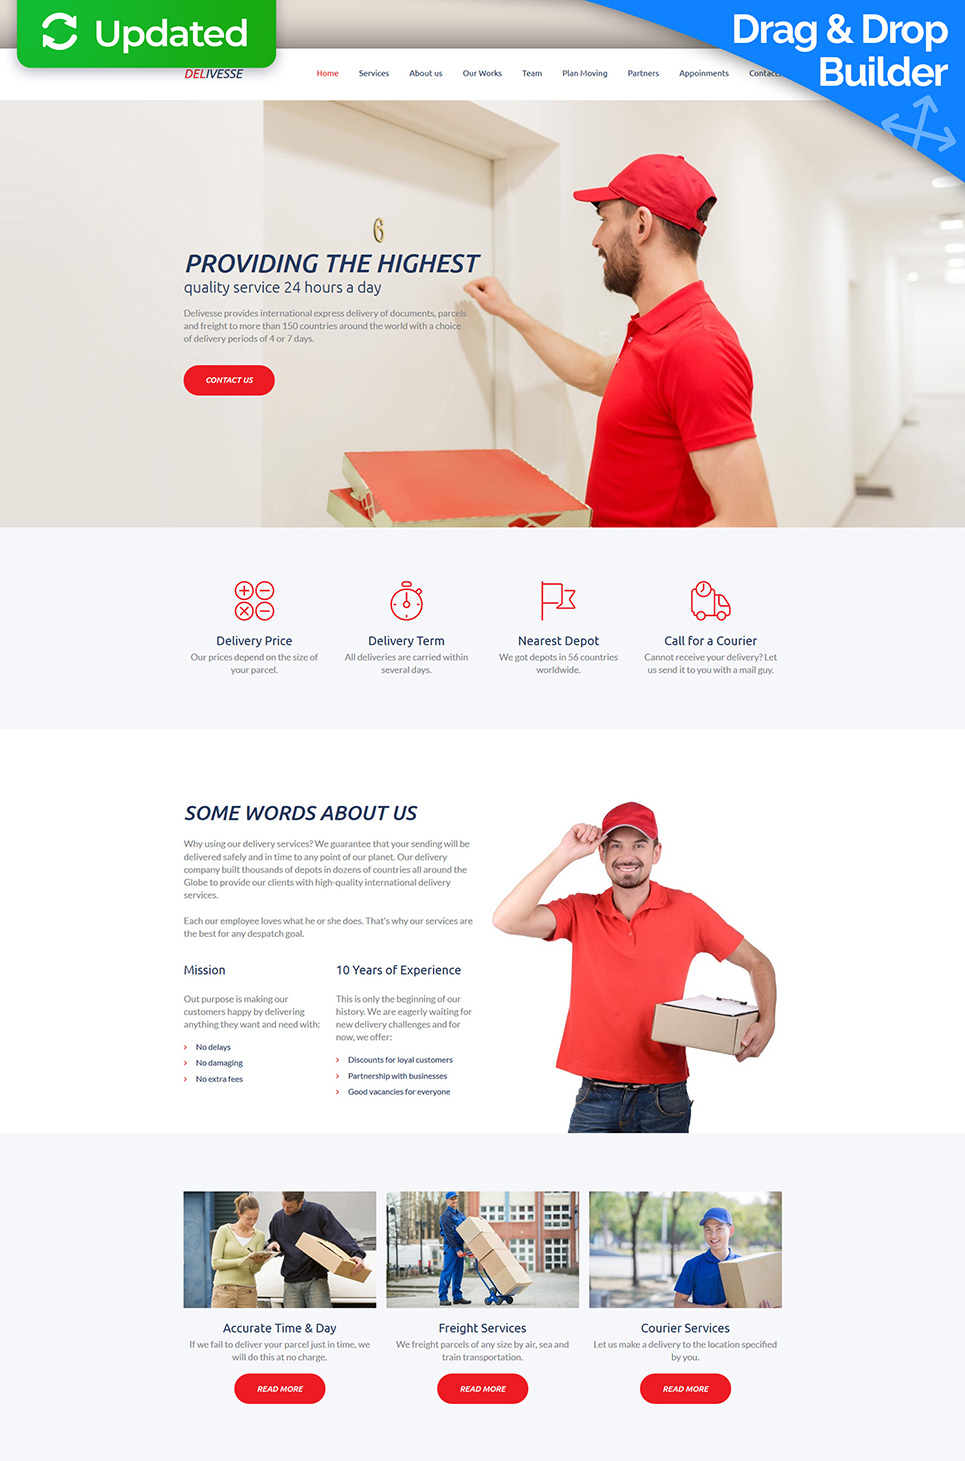 Delivesse - Delivery Services Premium Moto CMS 3 Template #63475